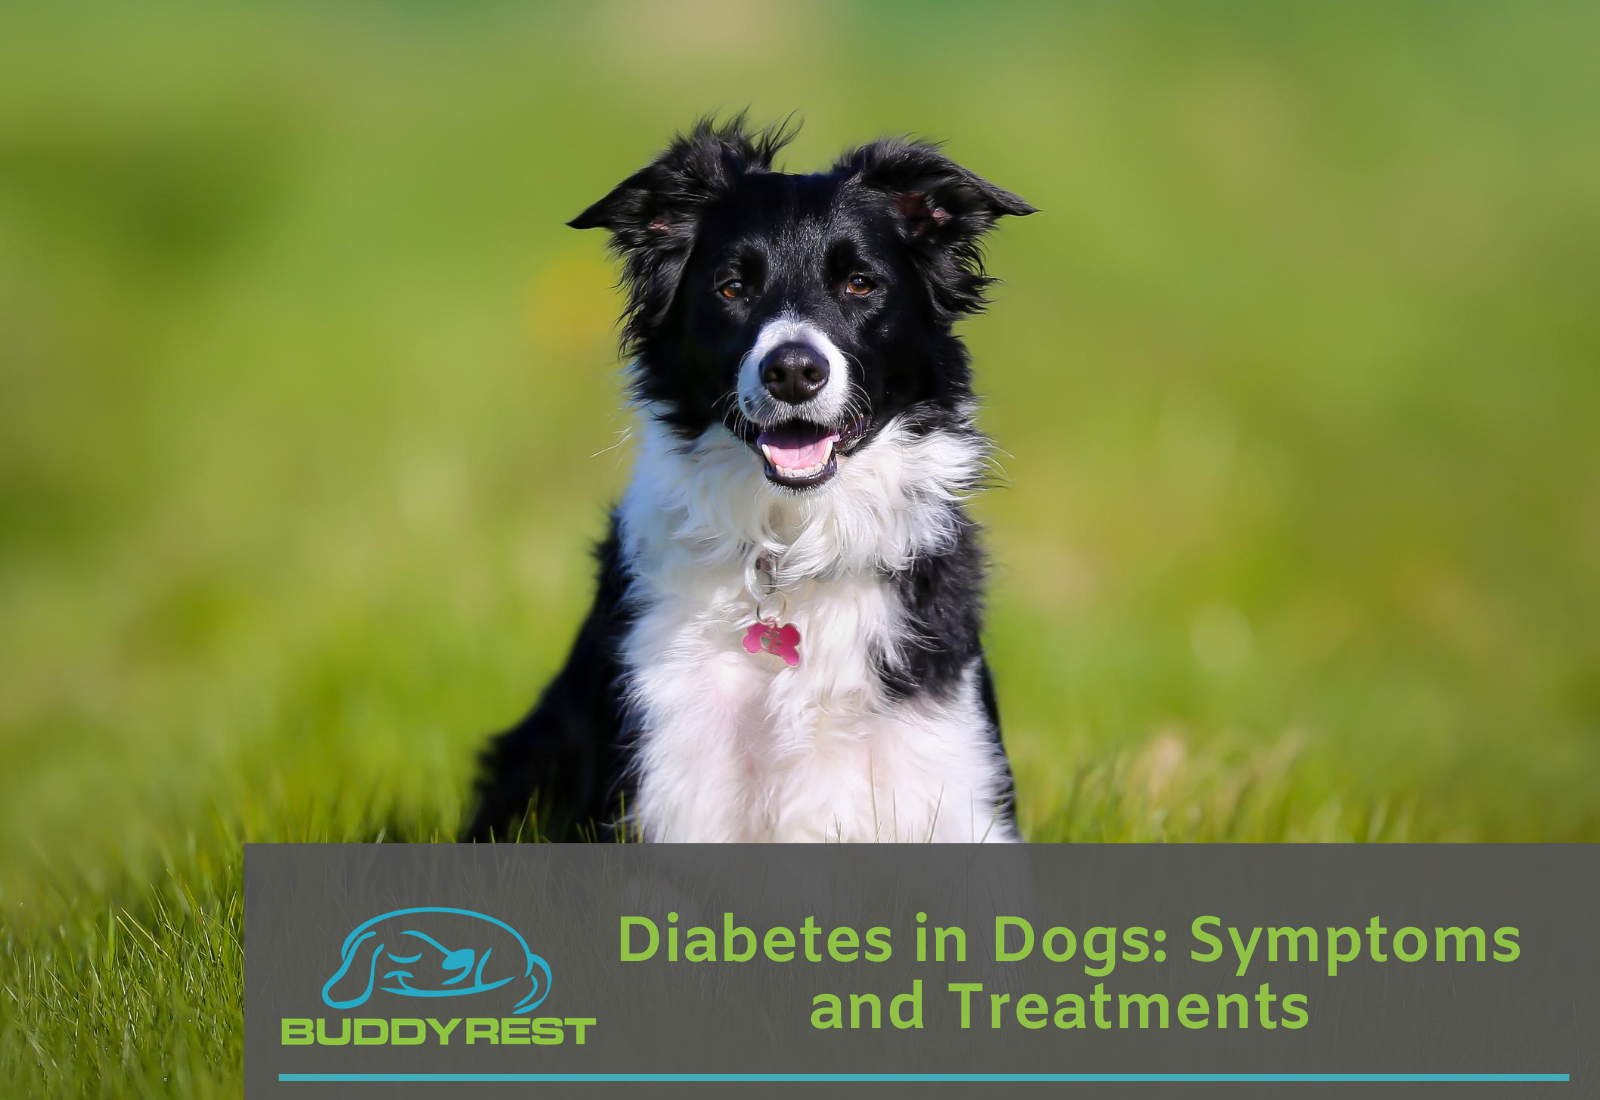 Diabetes in Dogs: Symptoms and Treatments